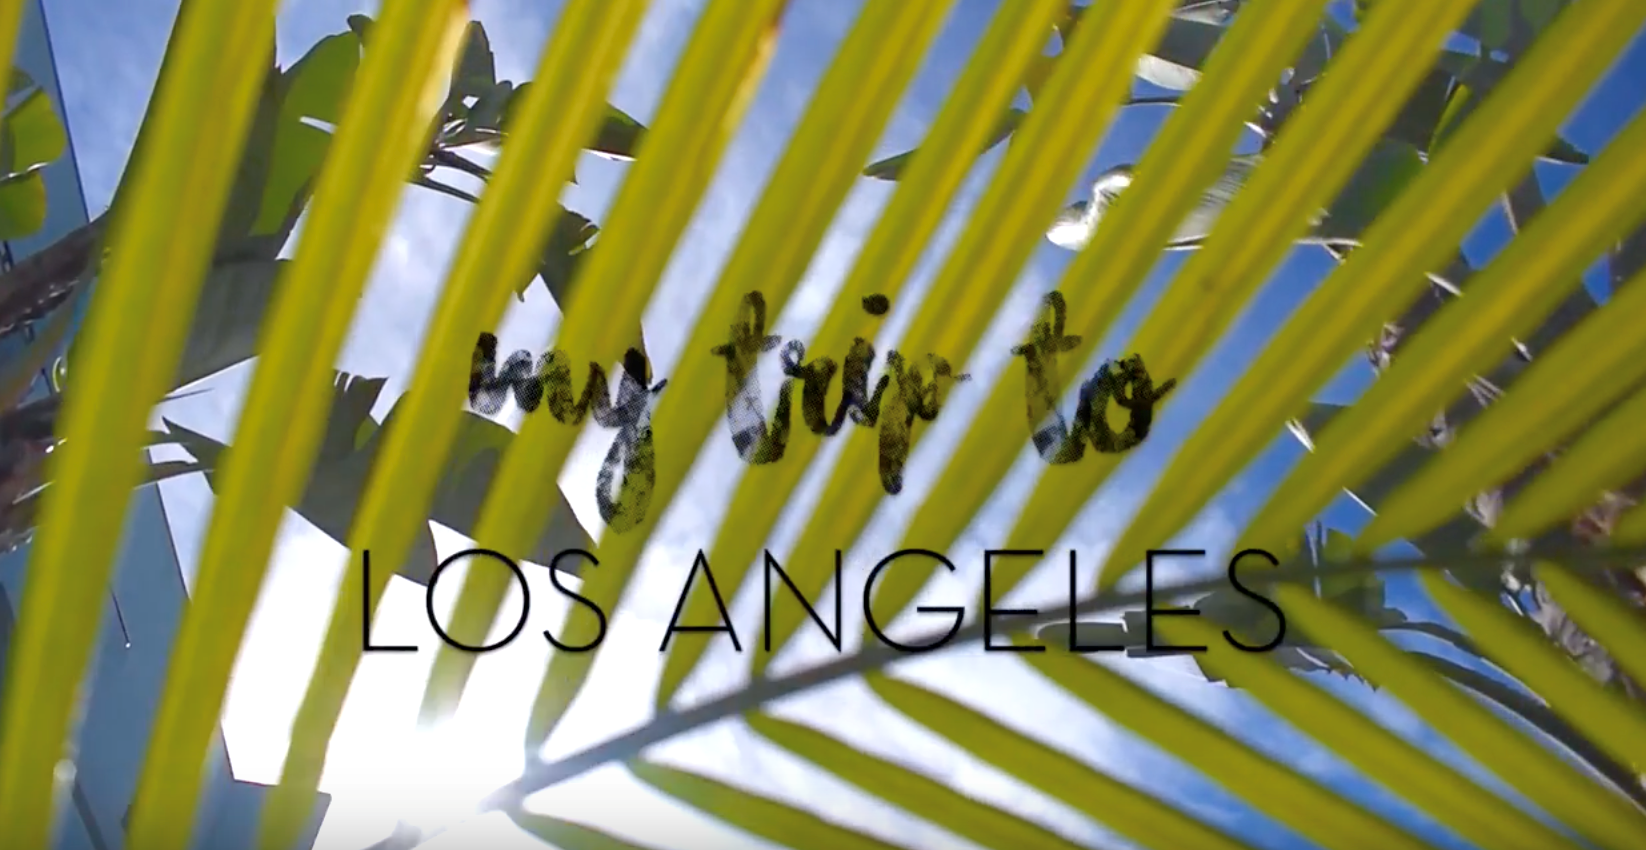 VIDEO FROM LOS ANGELES